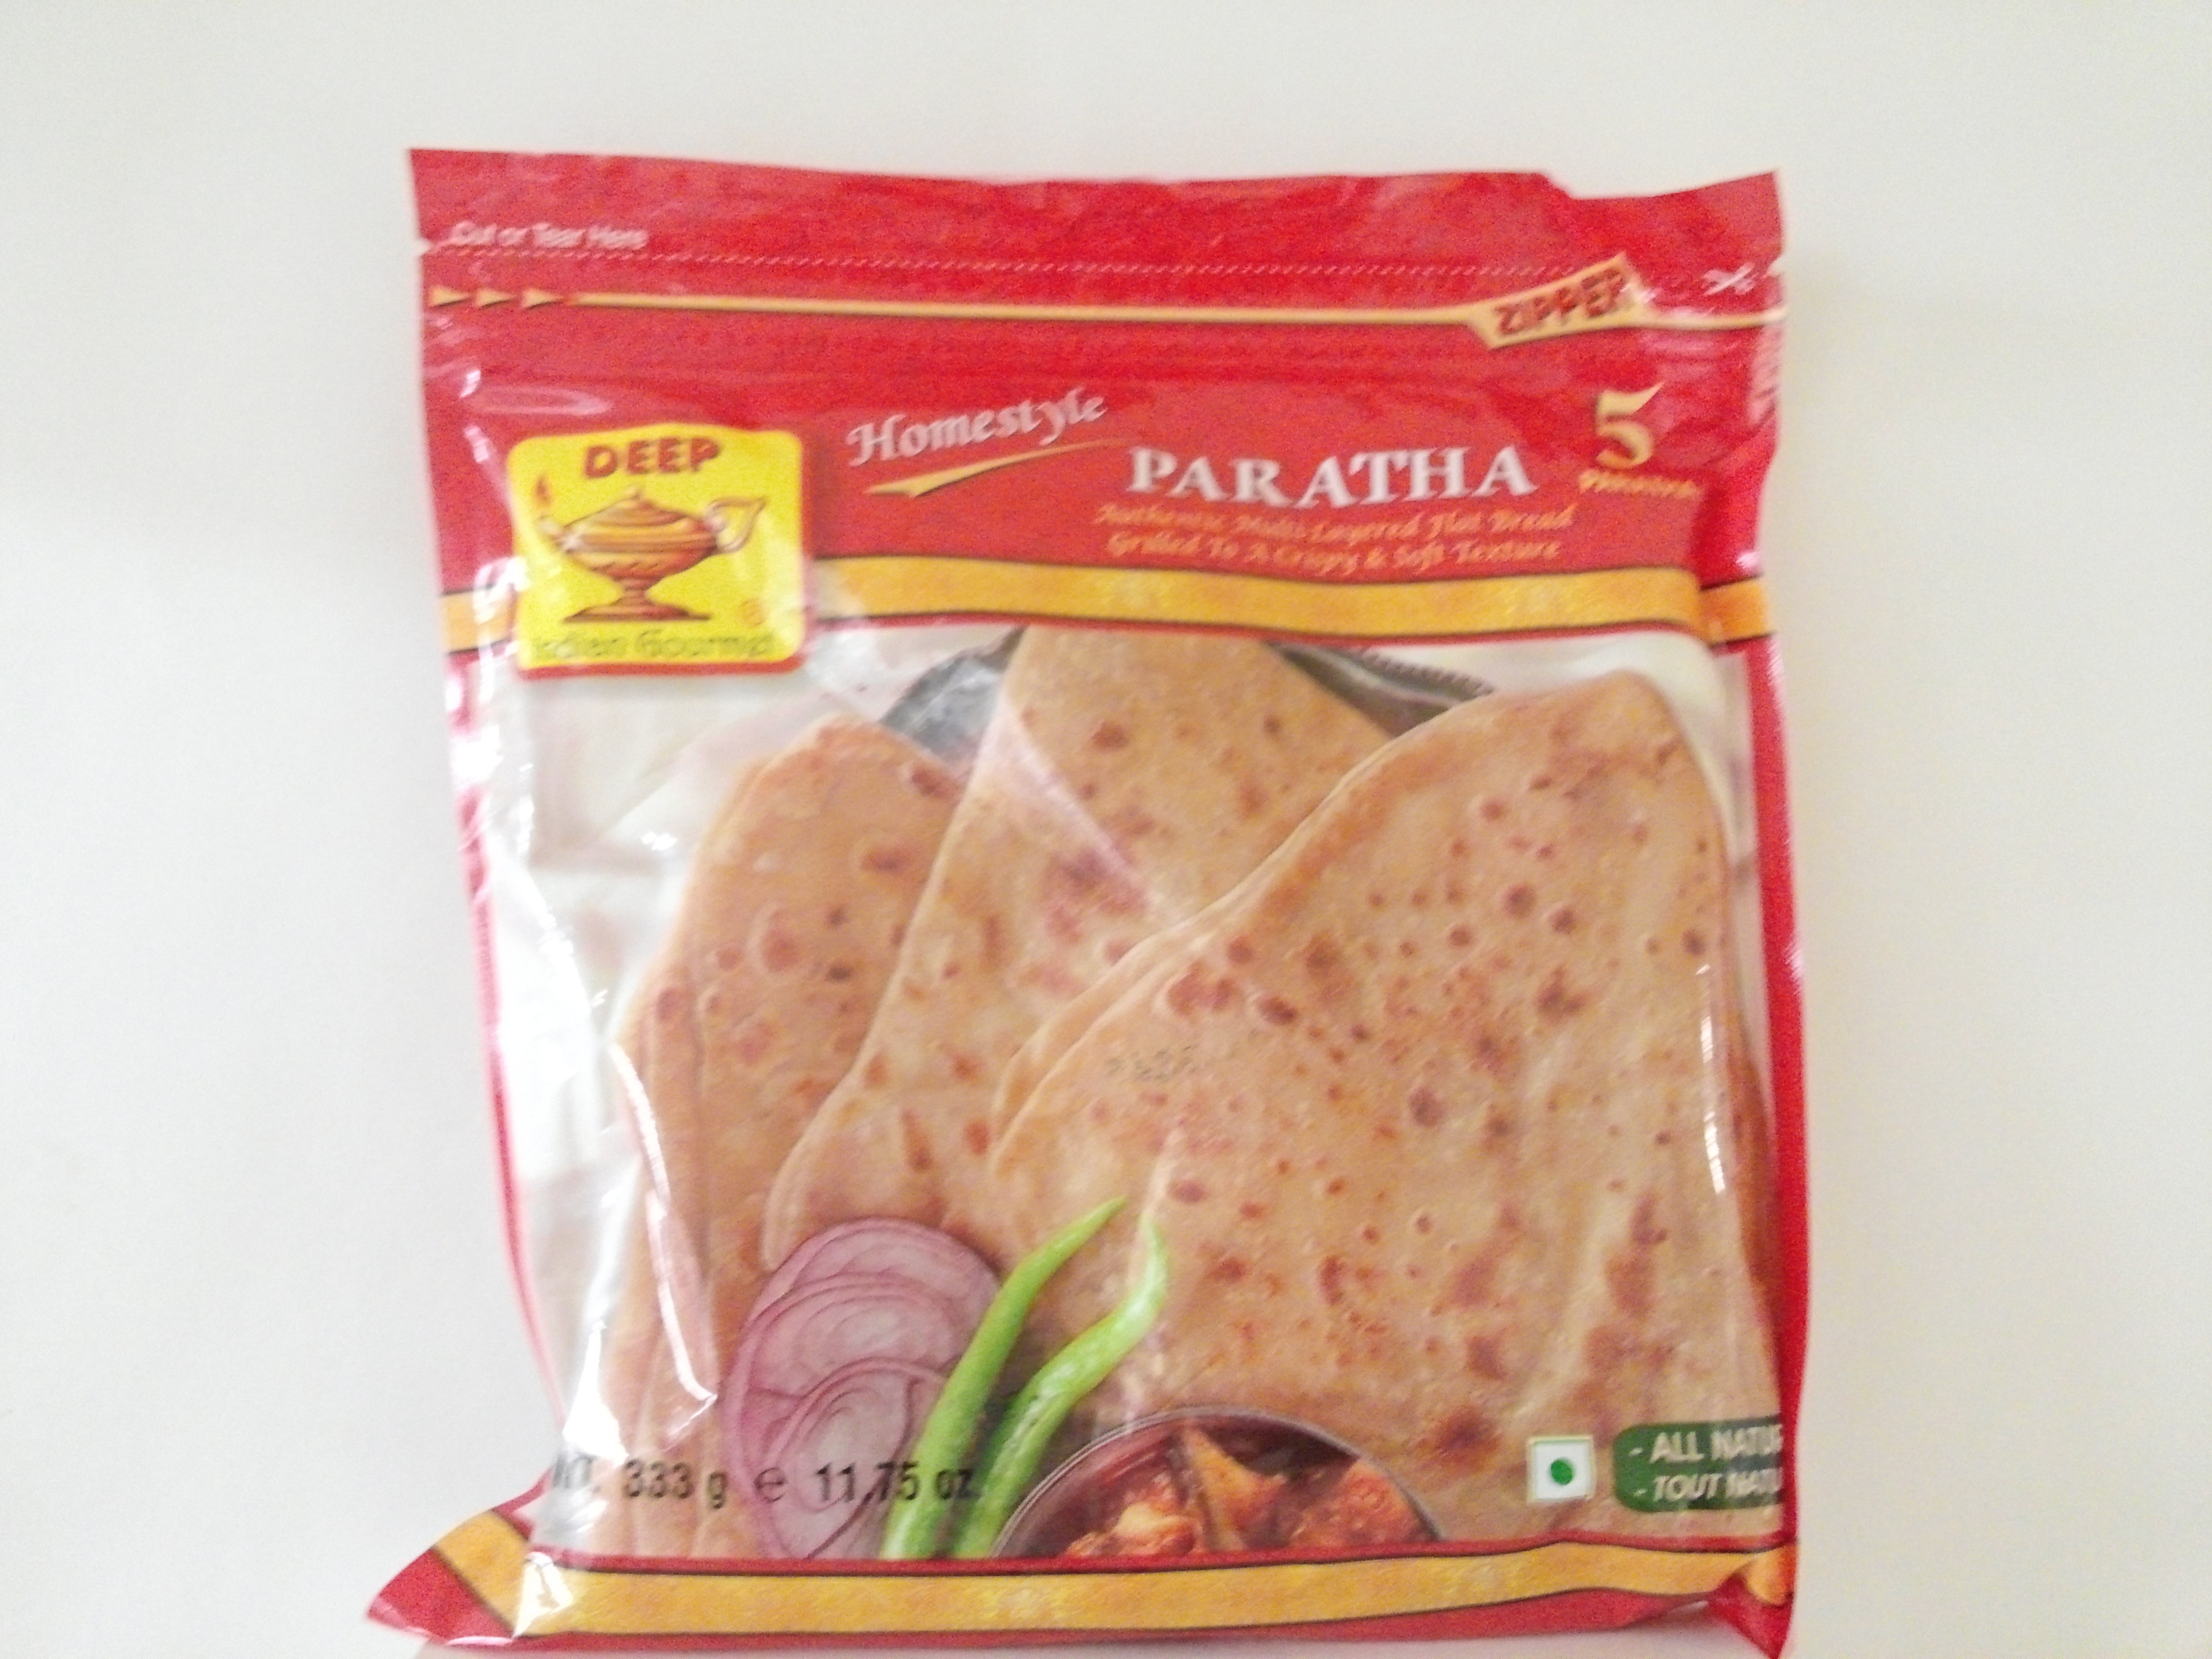 Deep Homestyle Plain Paratha 5 pcs 11.75 oz